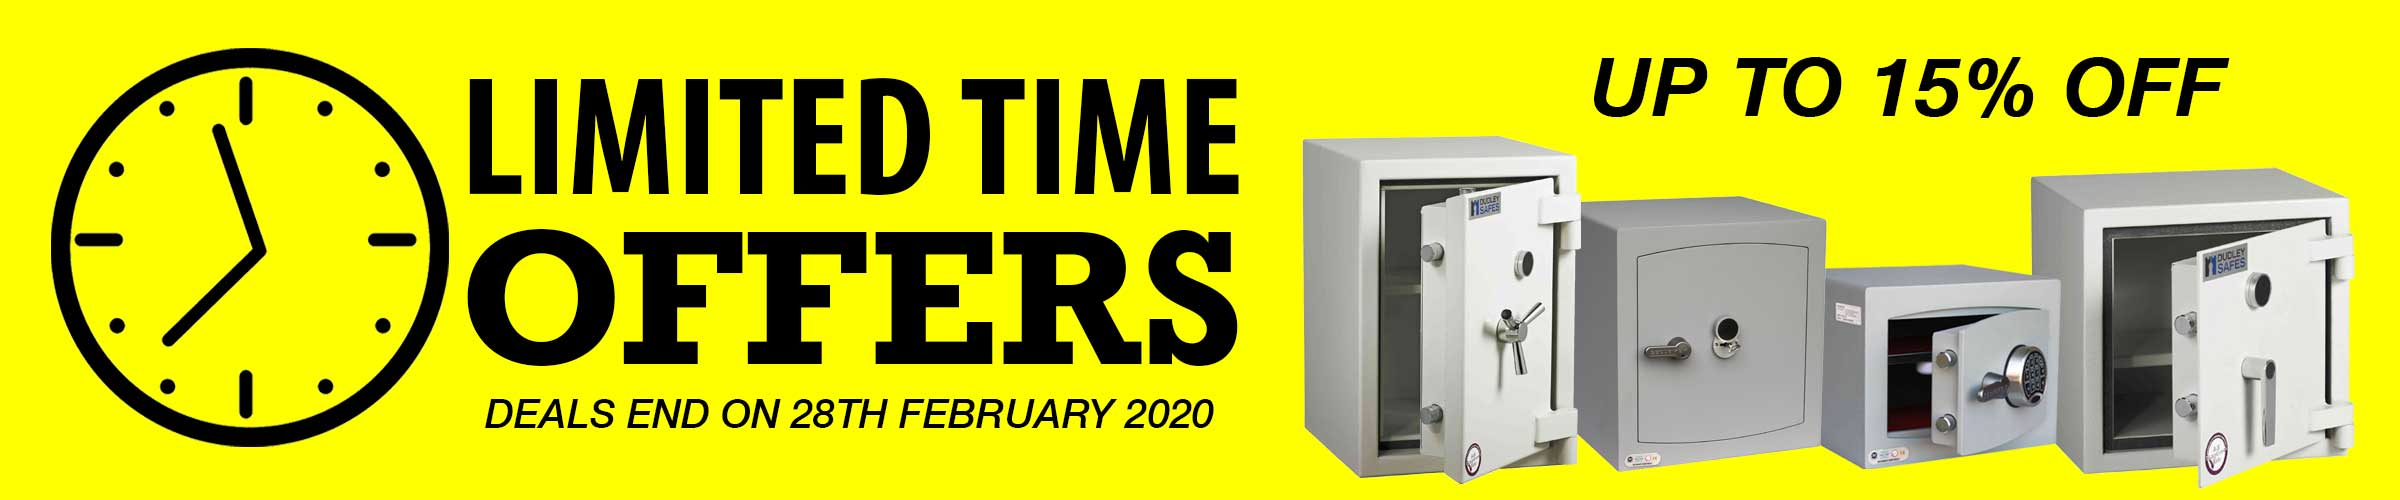 Security Safes Offers